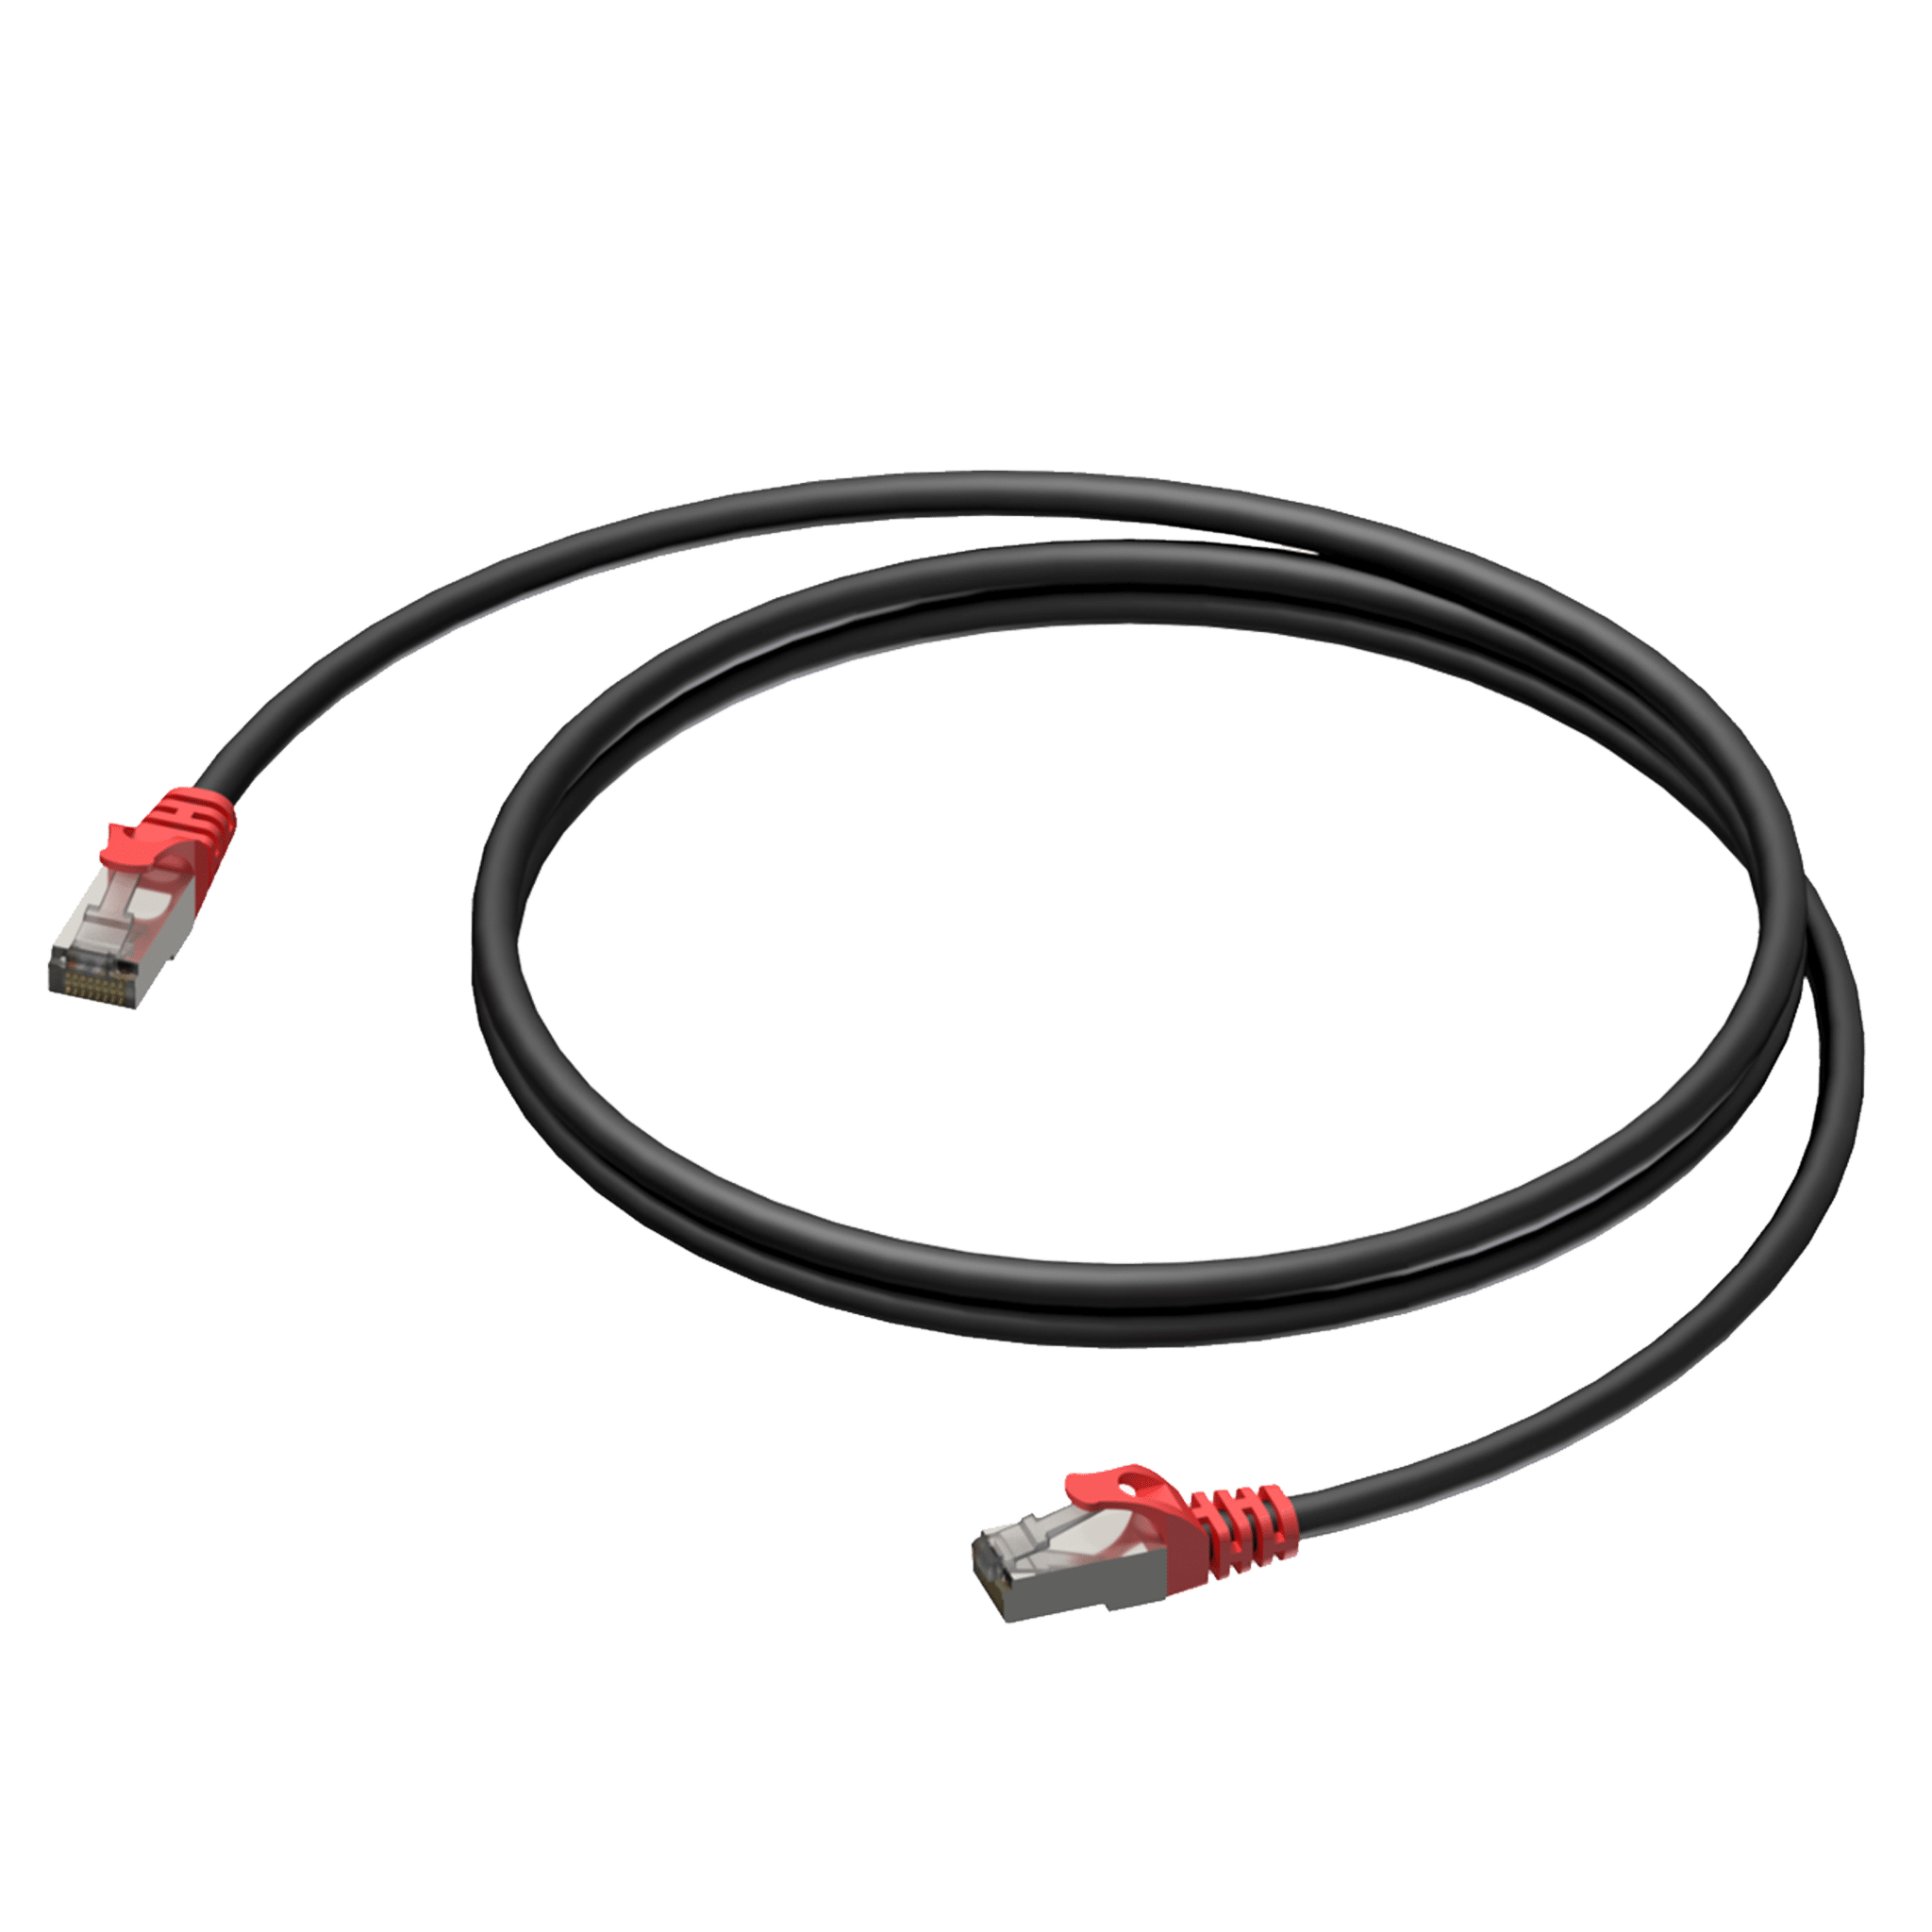 BSD550UX - Networking cross cable - CAT5 - U/UTP - RJ45 - LSHF